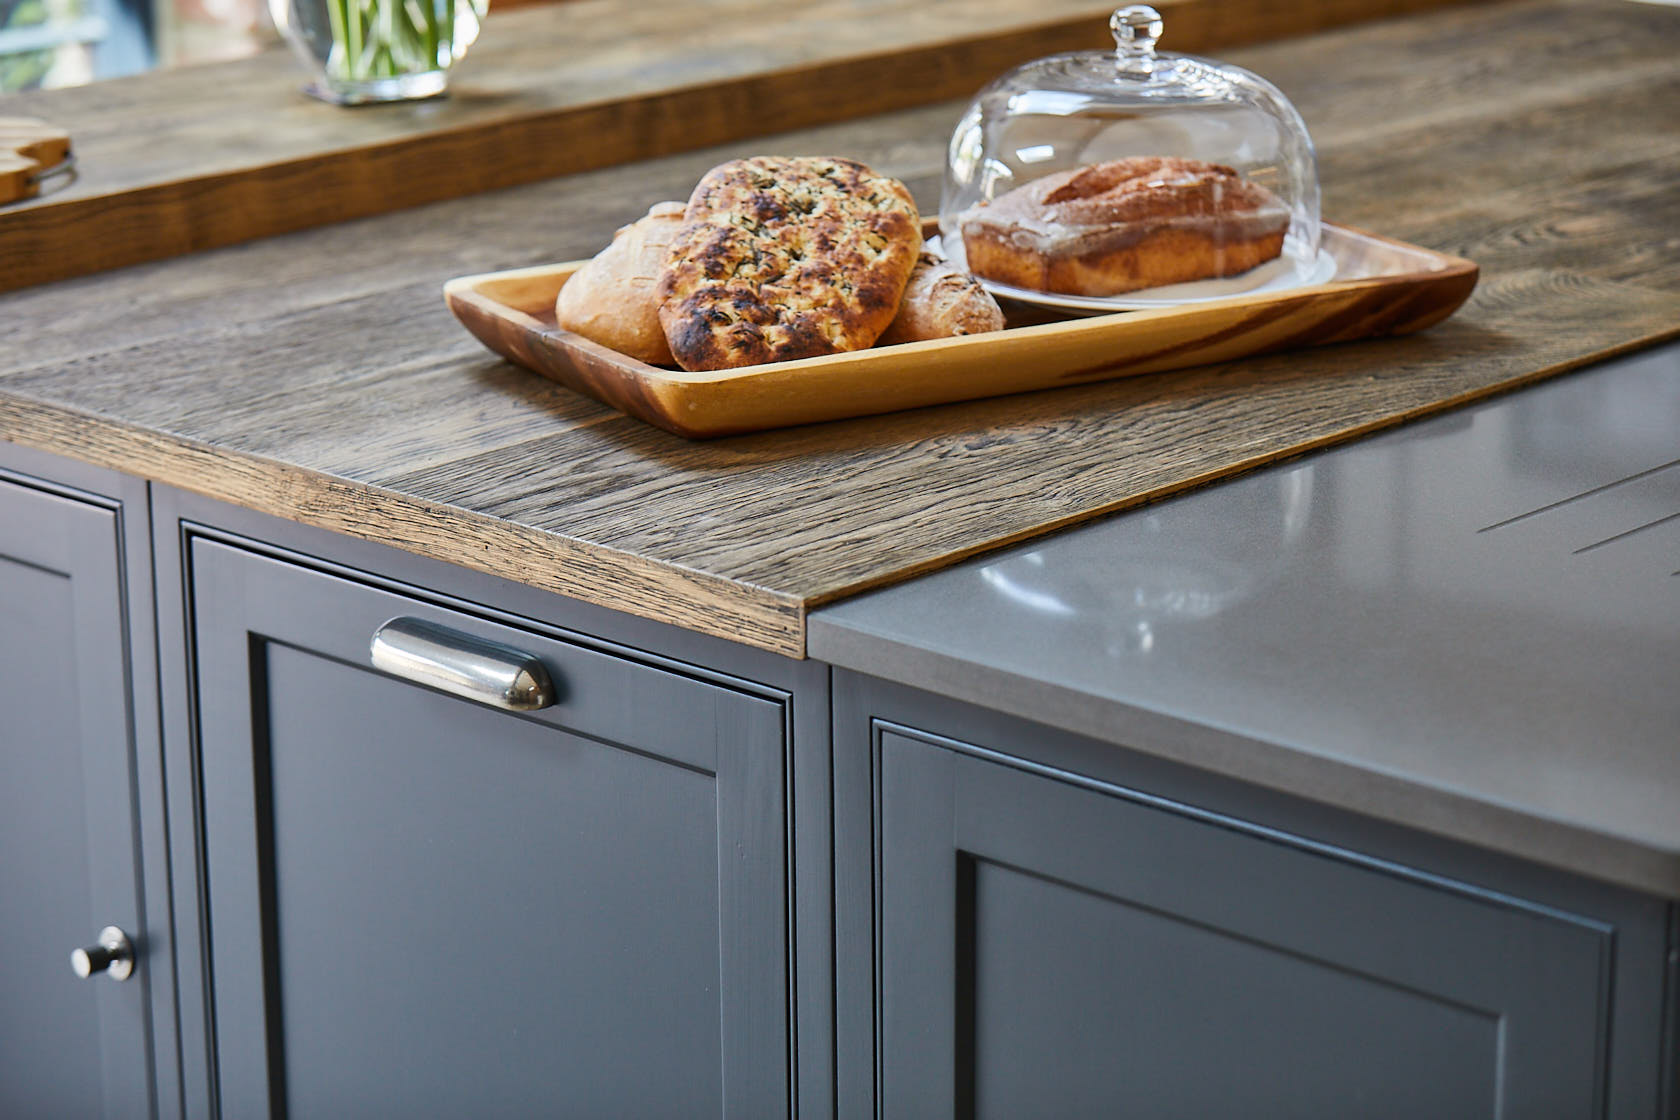 Lamp black shaker cabinets with engineered oak wood worktop and Finesse pewter cup handle